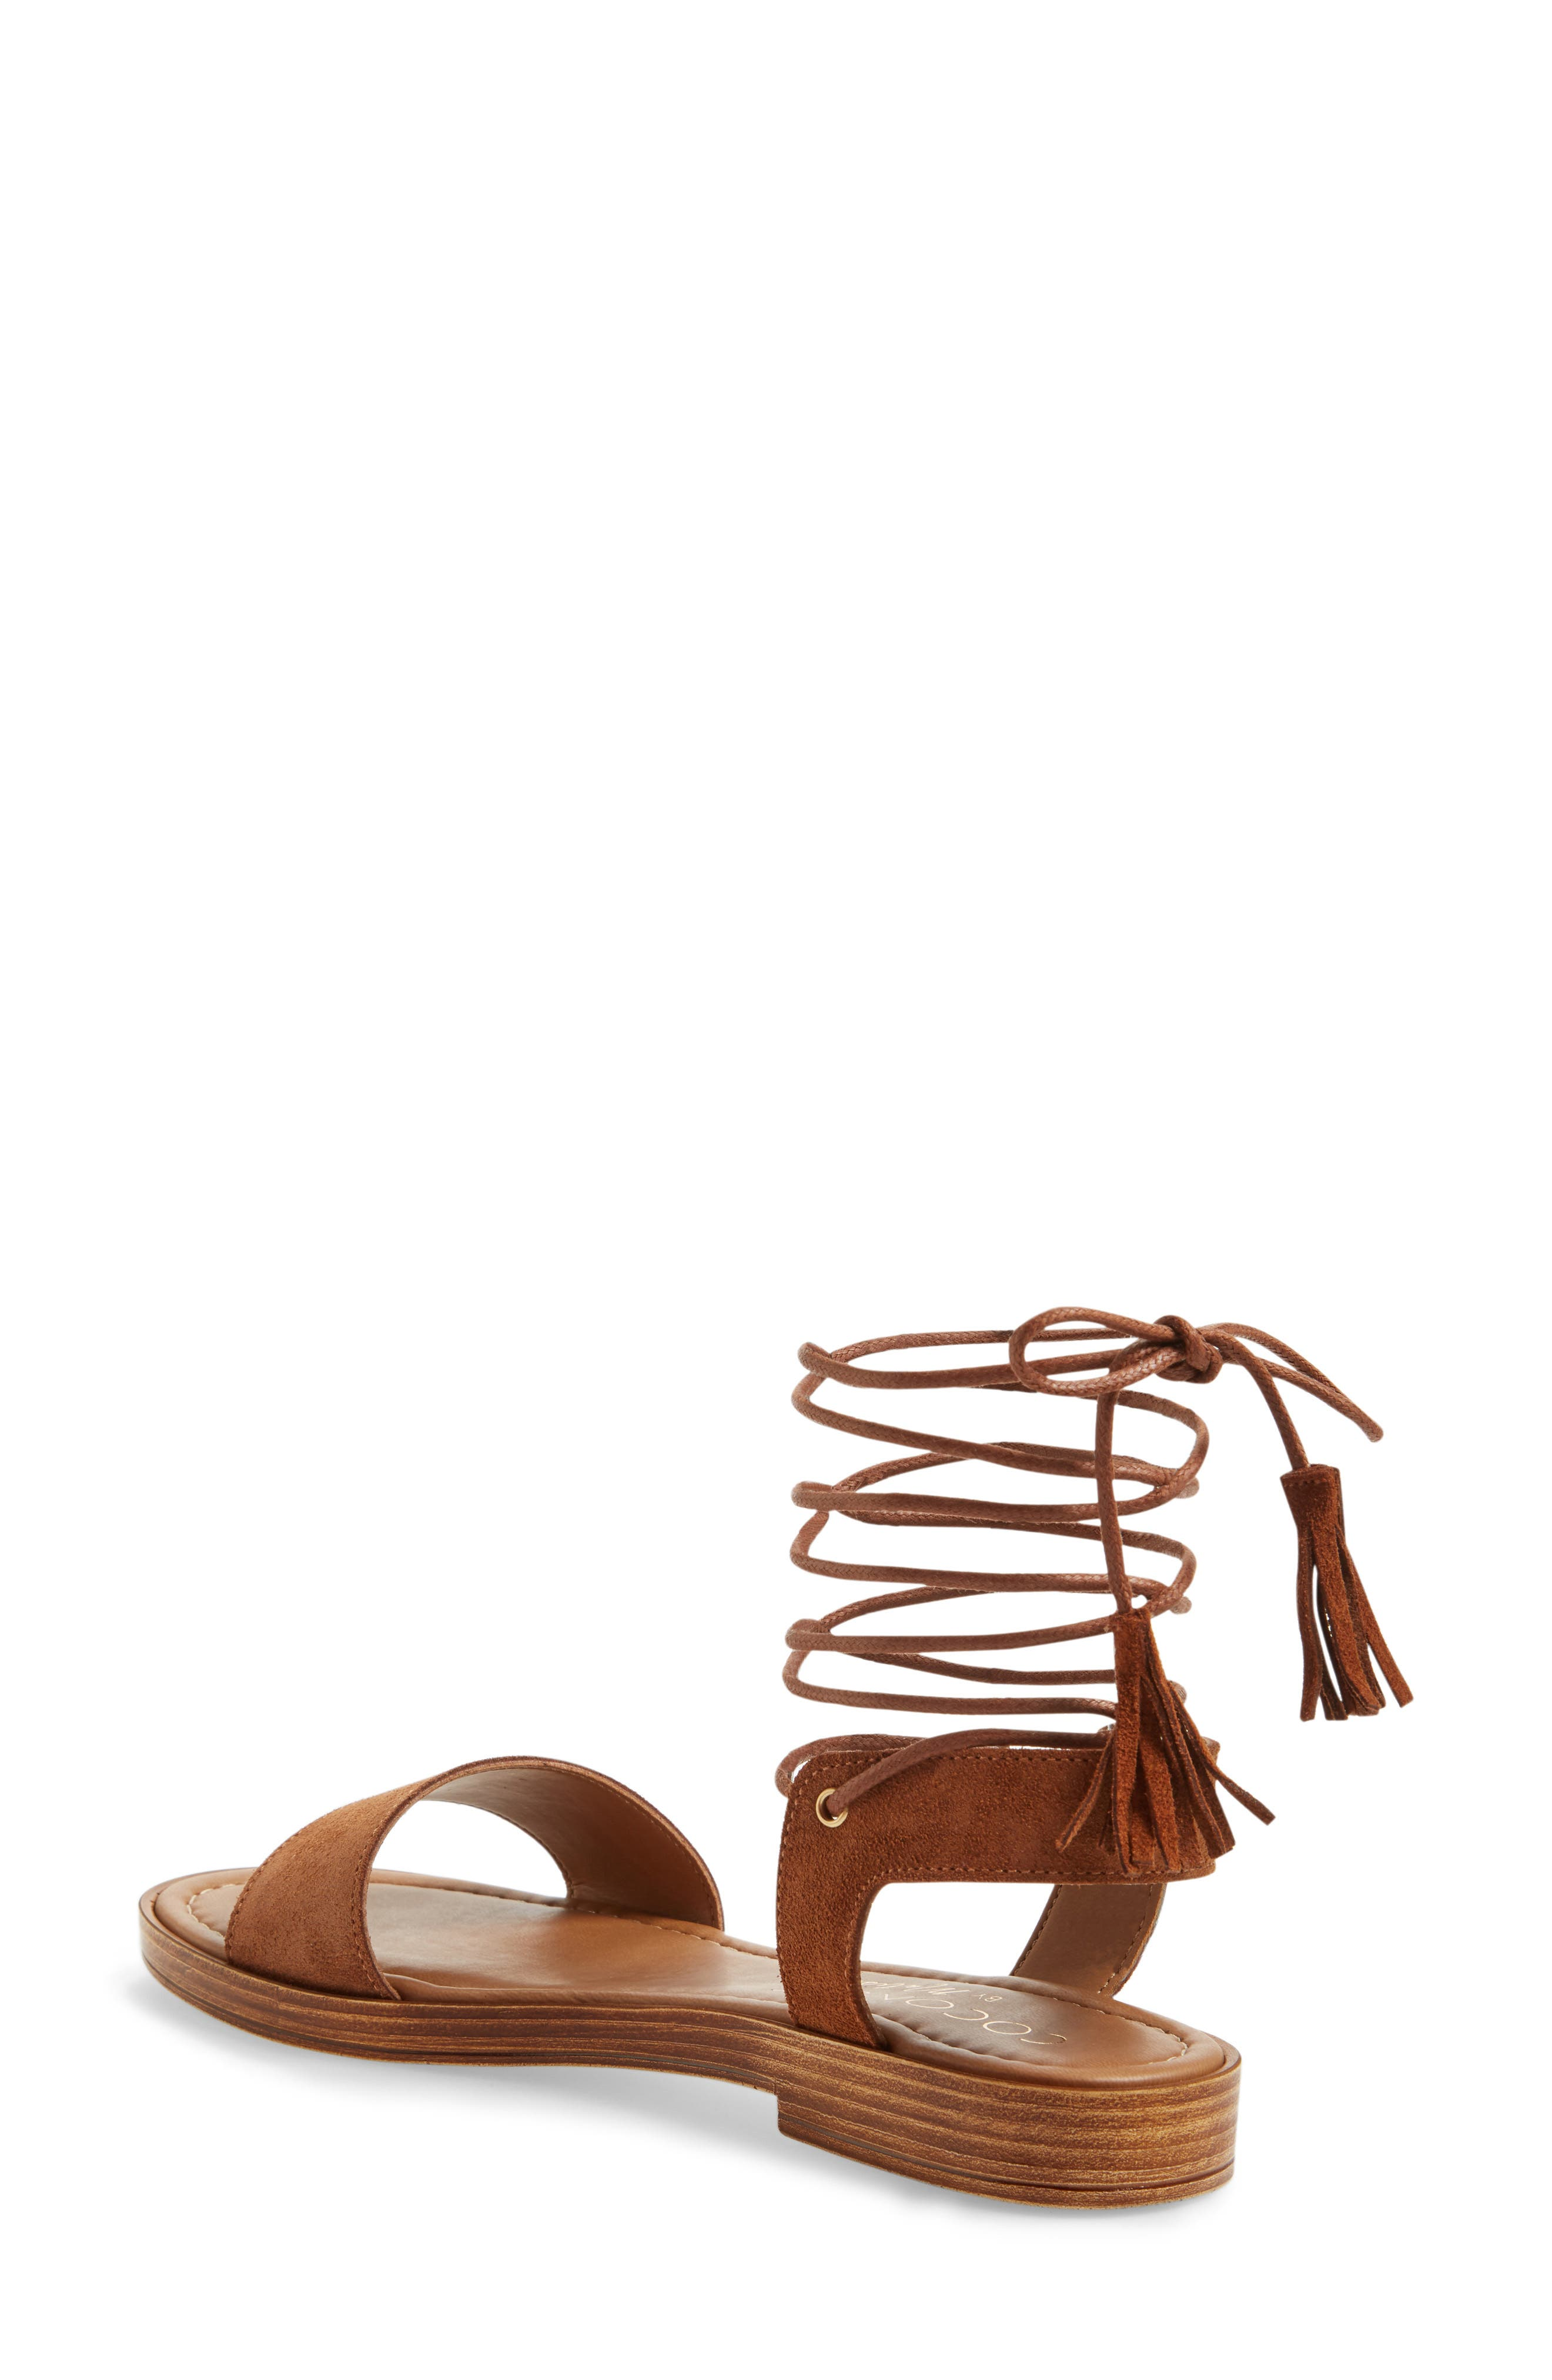 Sting Wraparound Lace Sandal,                             Alternate thumbnail 2, color,                             238